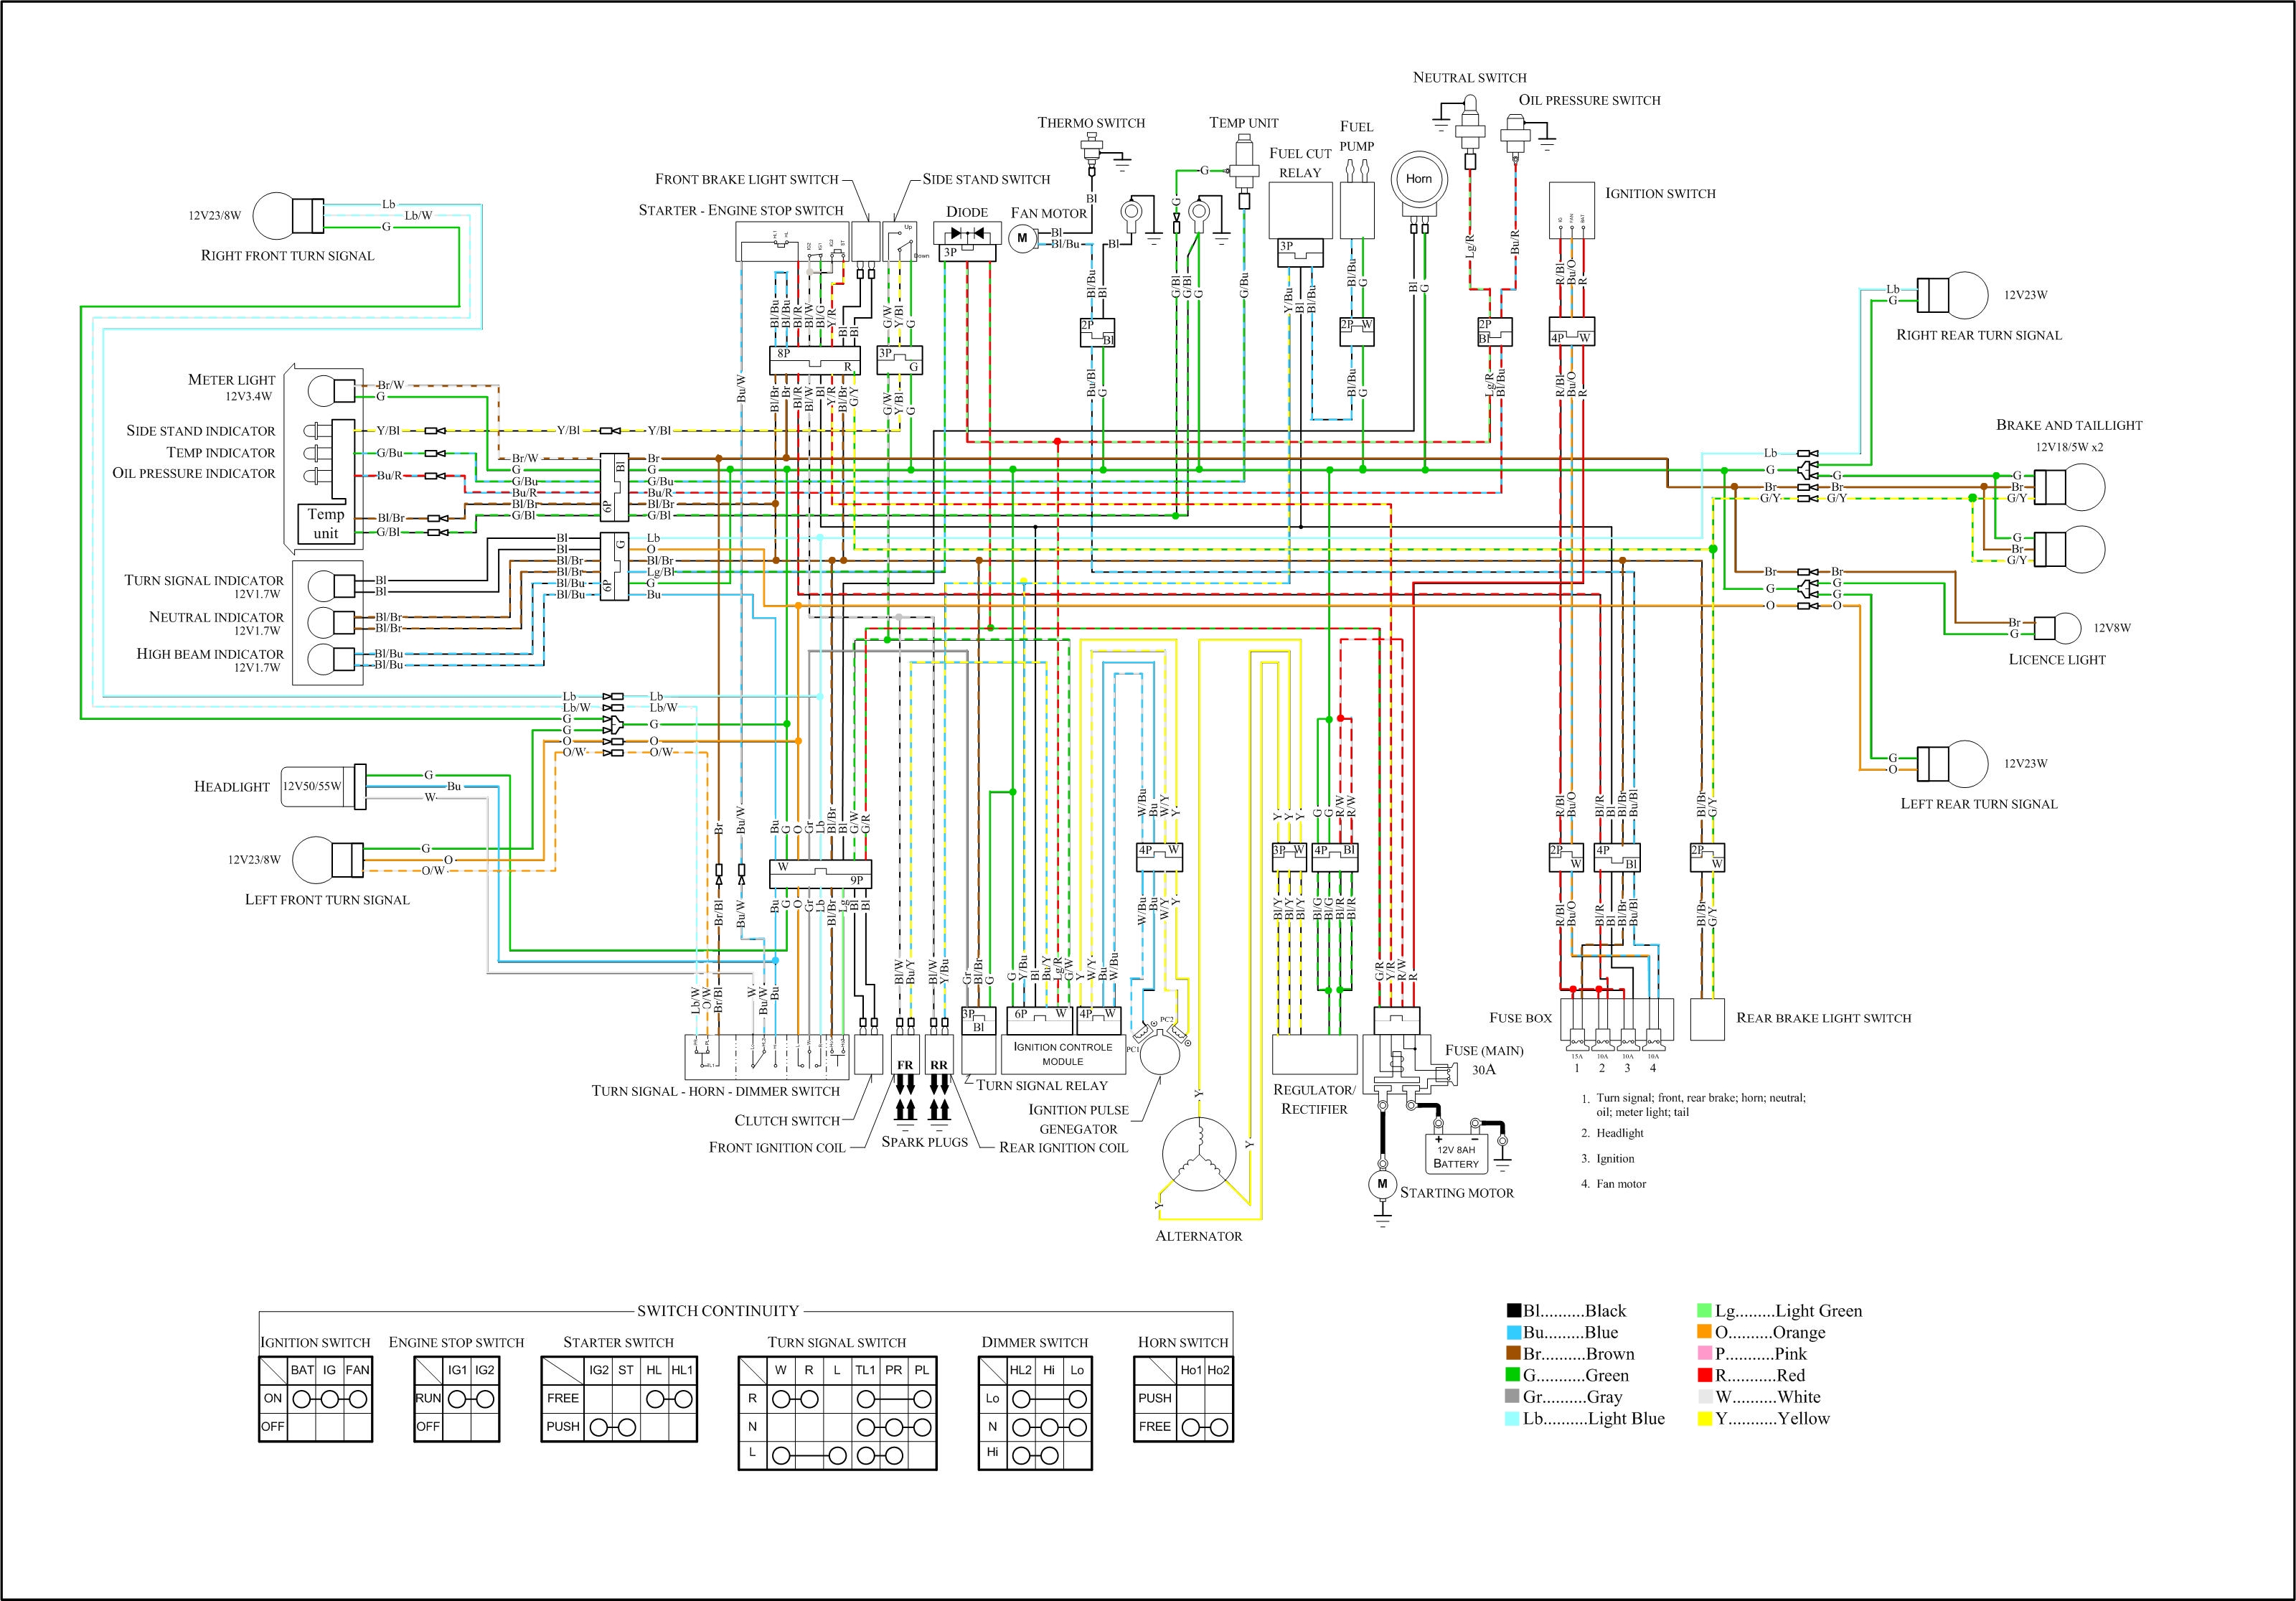 49cc Scooter Wiring Diagram Electric Scooters For Sale Library 2 Stroke Schematic Motorcycle Diagrams Rh Cycleterminal Com Honda 50cc Moped